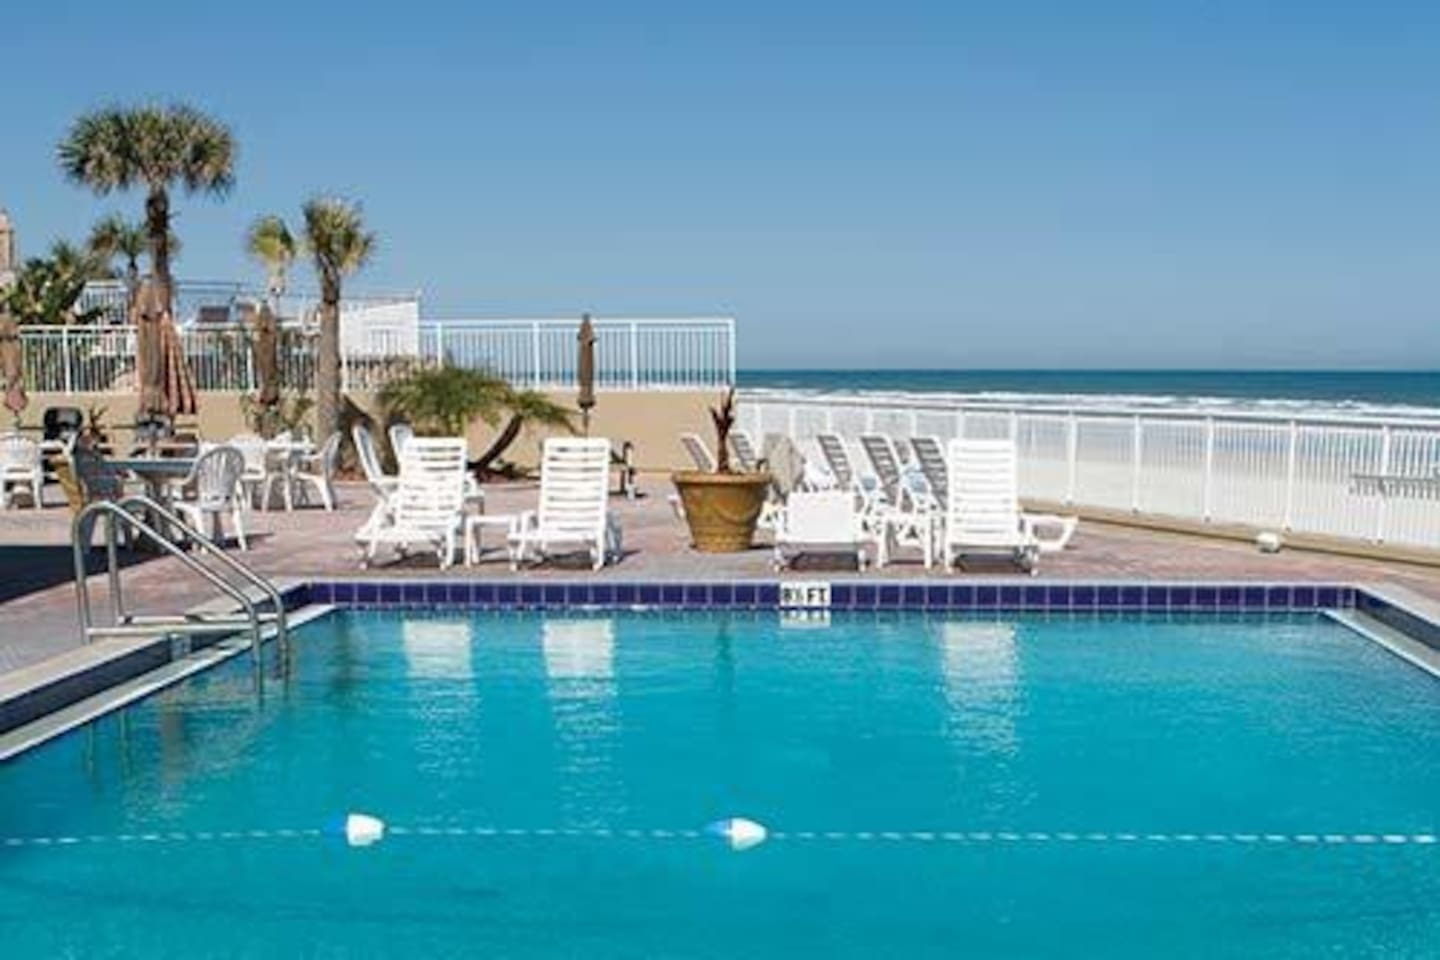 Perennial Vacation Club - Hotels - 2525 S Atlantic Ave, Daytona Perennial vacation club at daytona beach pictures